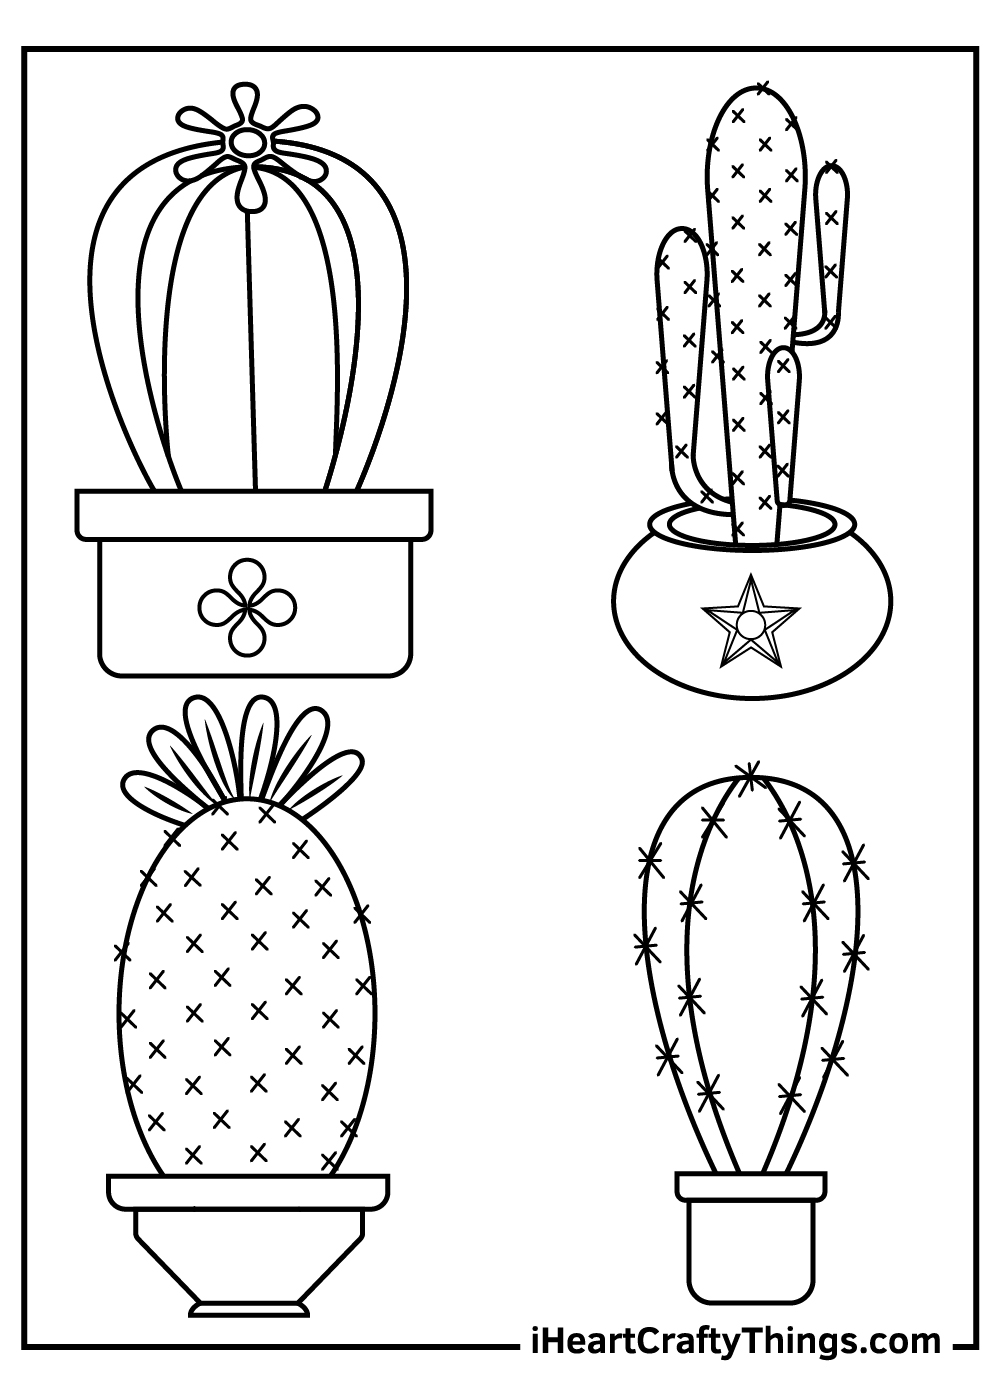 cartoon cactus coloring pages